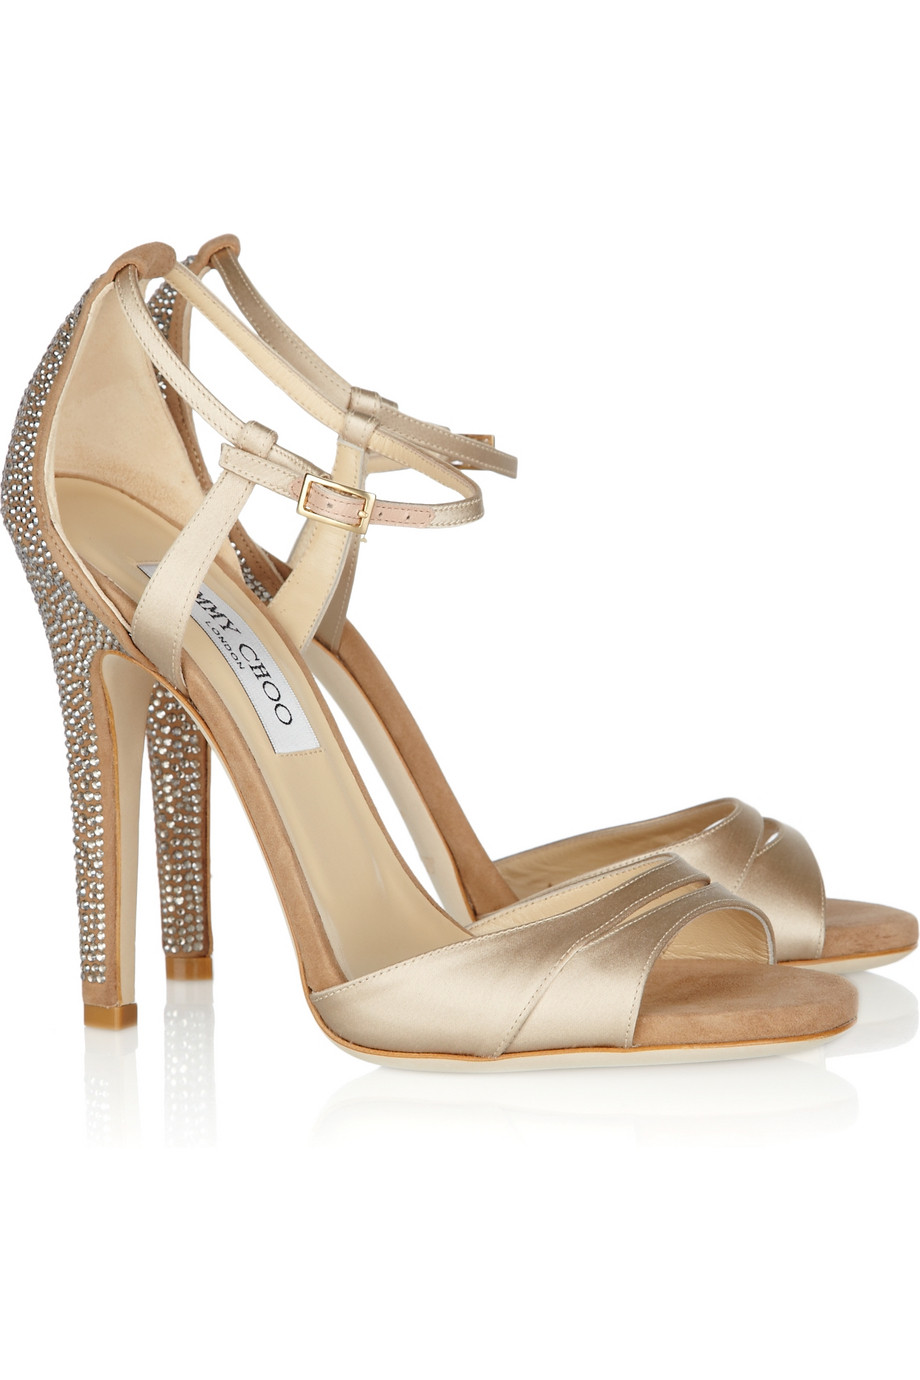 1b79b608e401 Lyst - Jimmy Choo Tema Crystal-embellished Satin and Suede Sandals ...